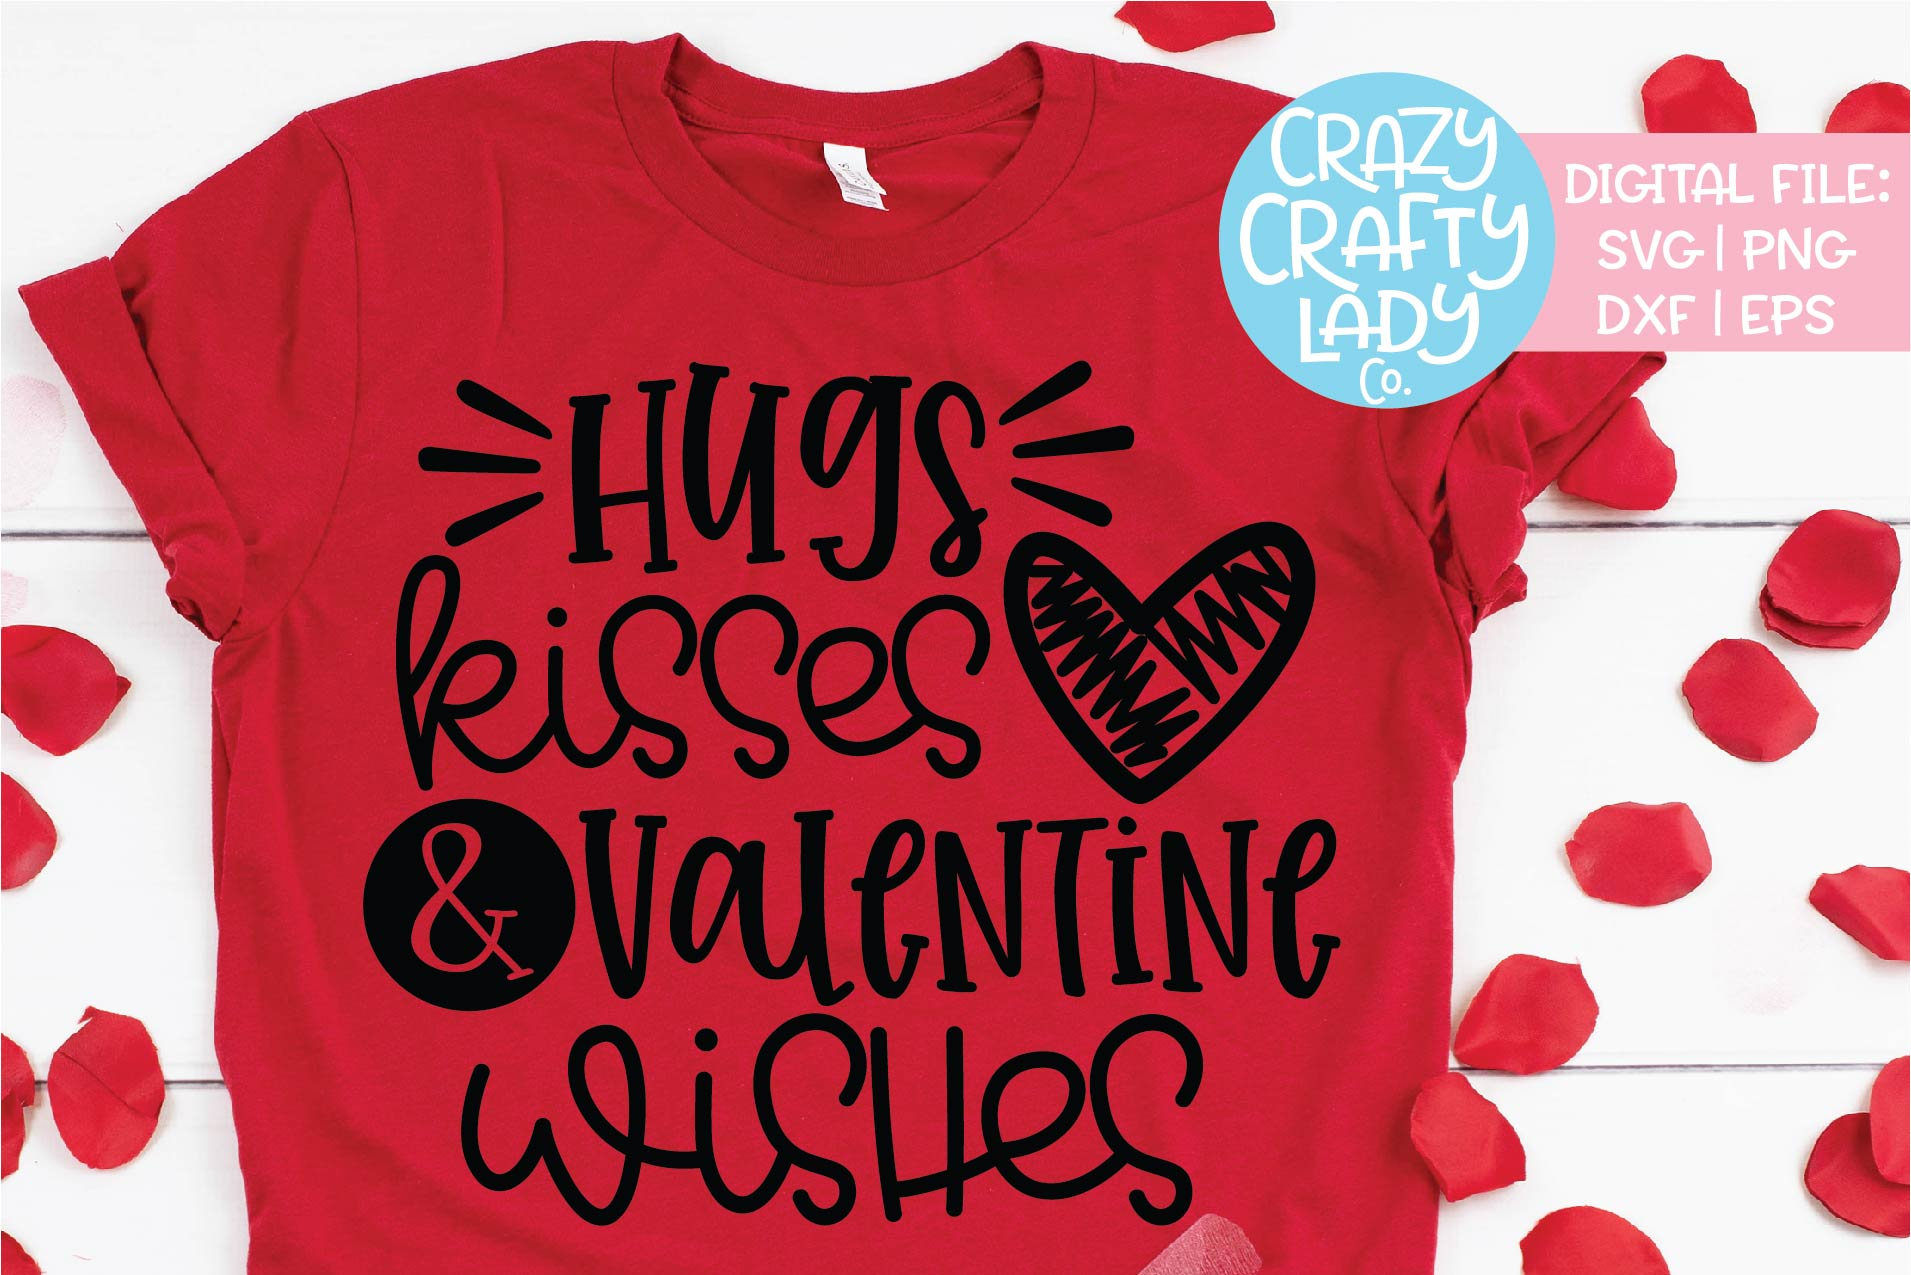 Hugs Kisses & Valentine Wishes SVG DXF EPS PNG Cut File example image 1